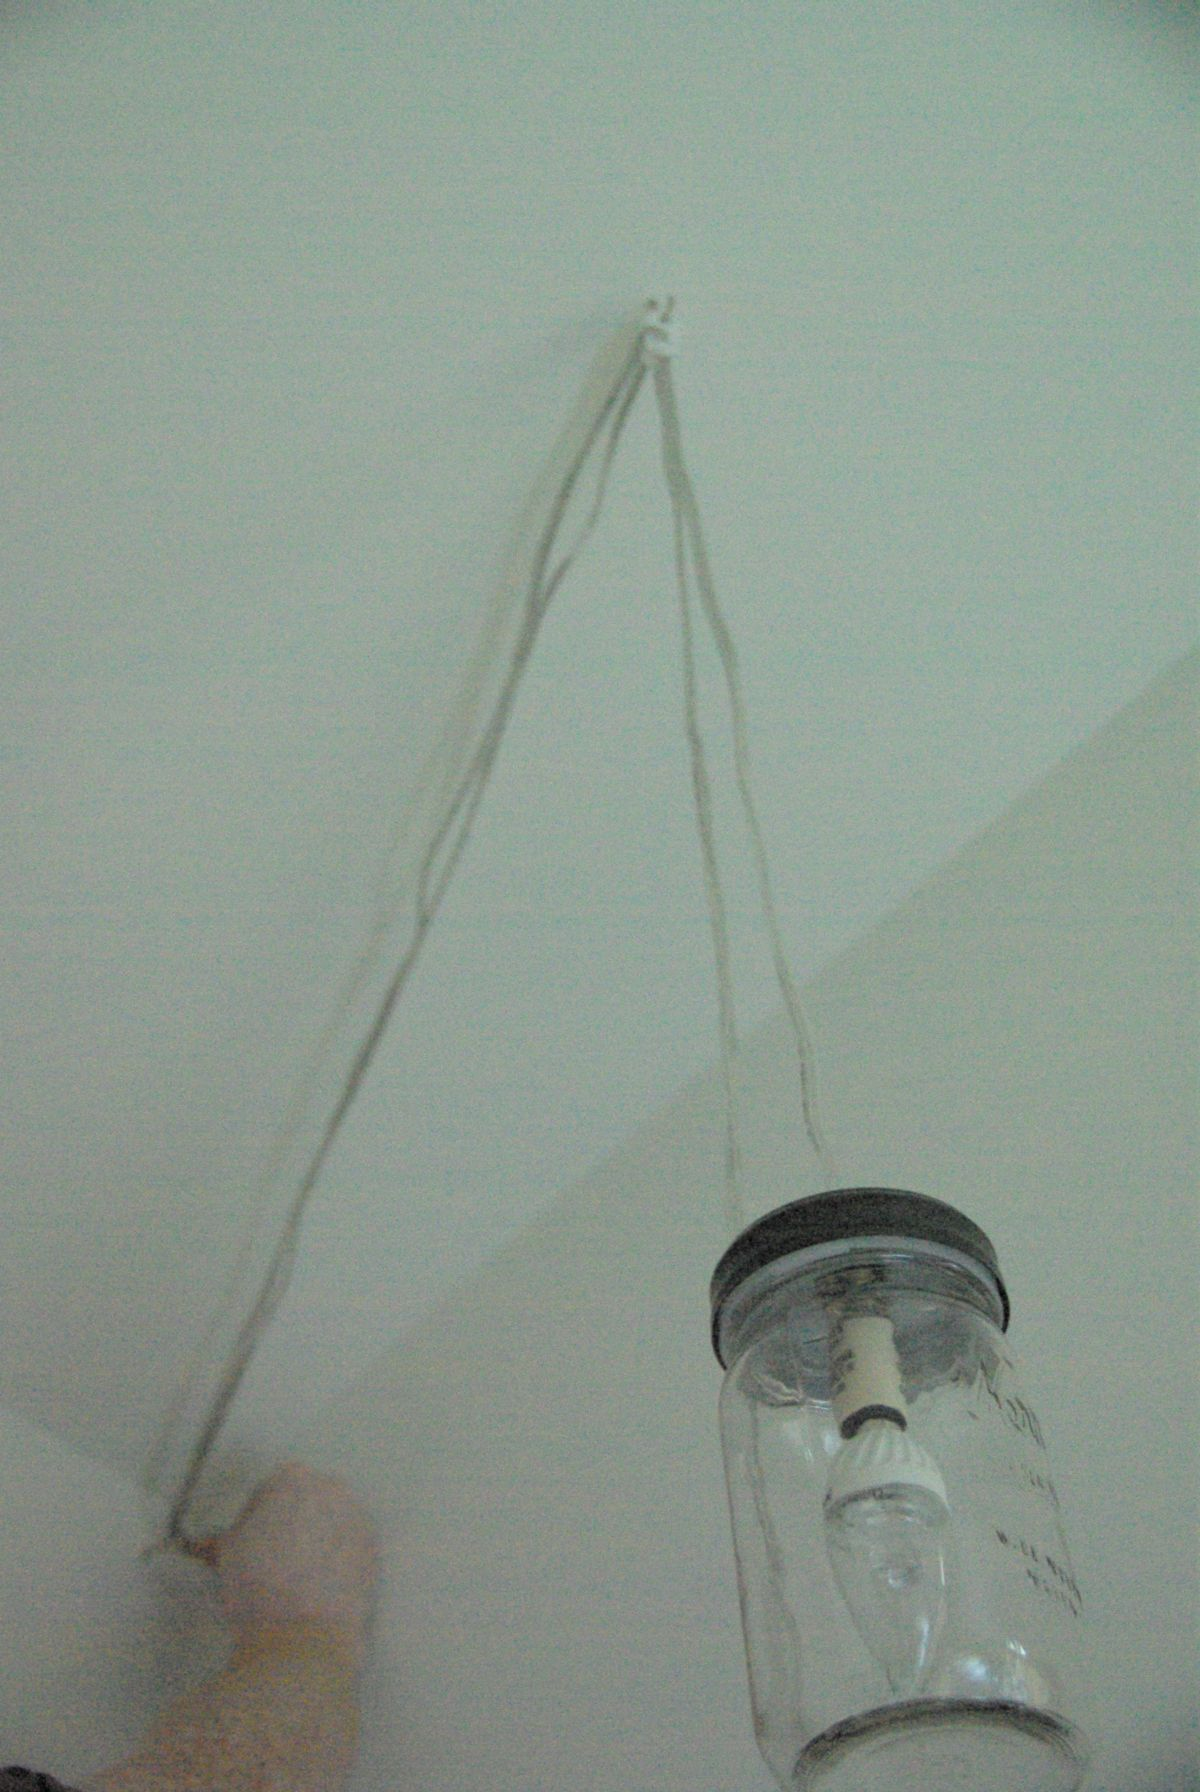 Pulling ceiling light cord tight